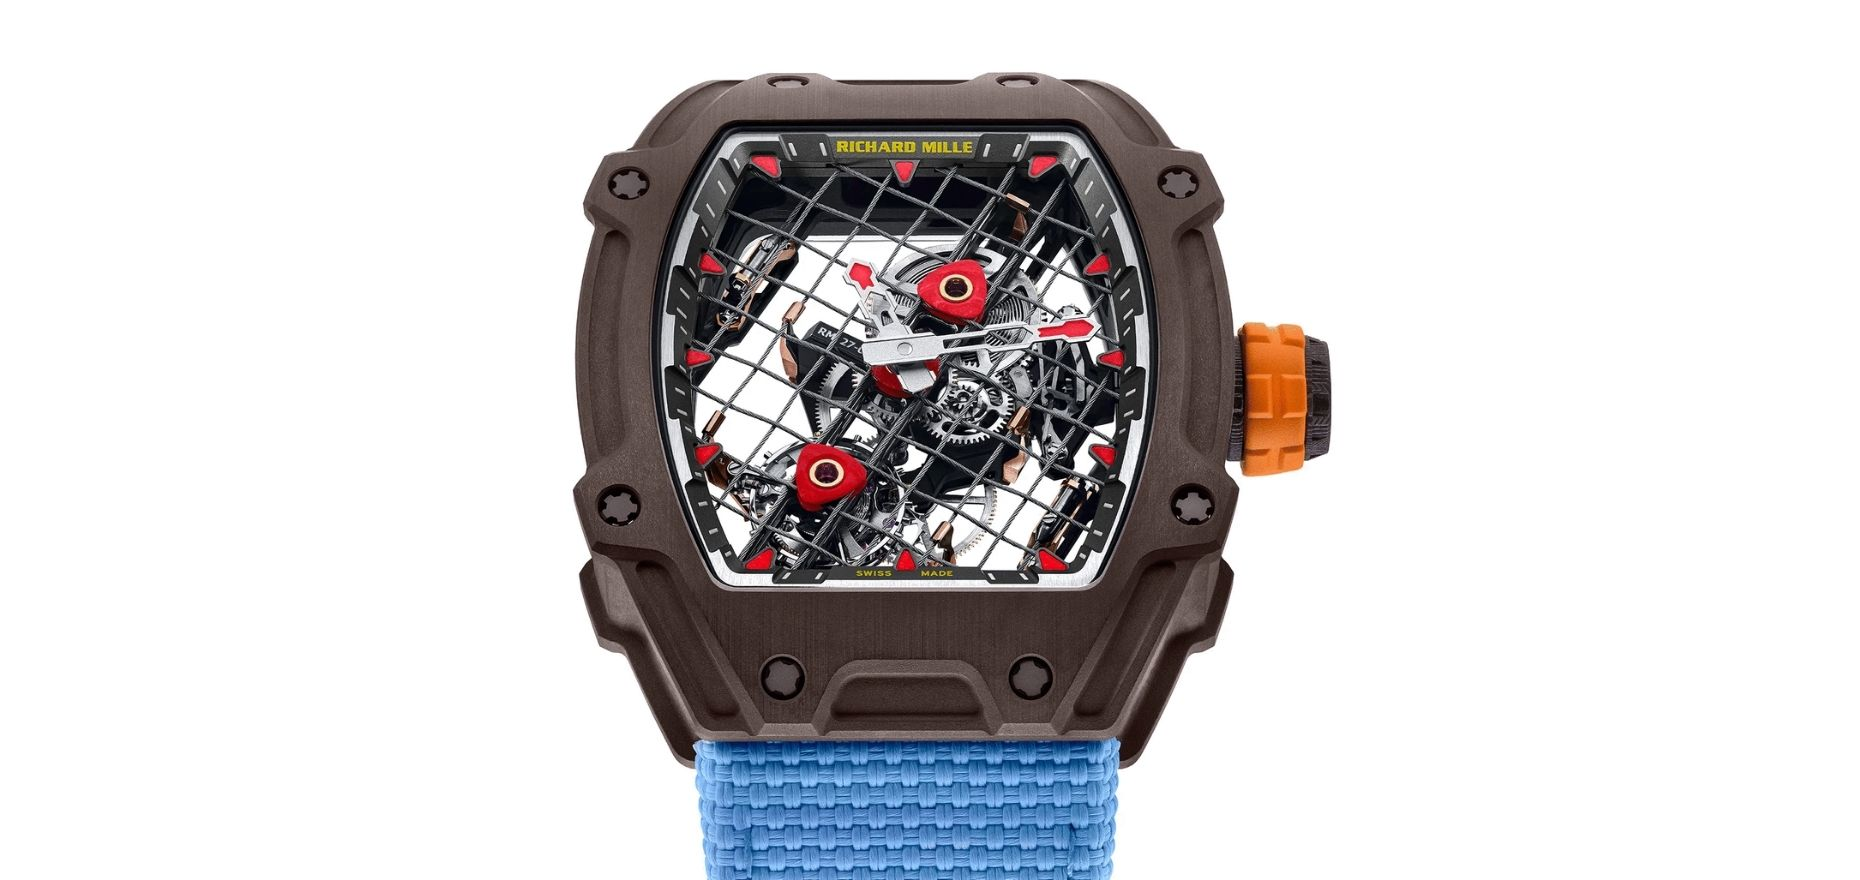 Richard Mille Rm 27 04 A New Lightweight Tourbillon For Rafael Nadal